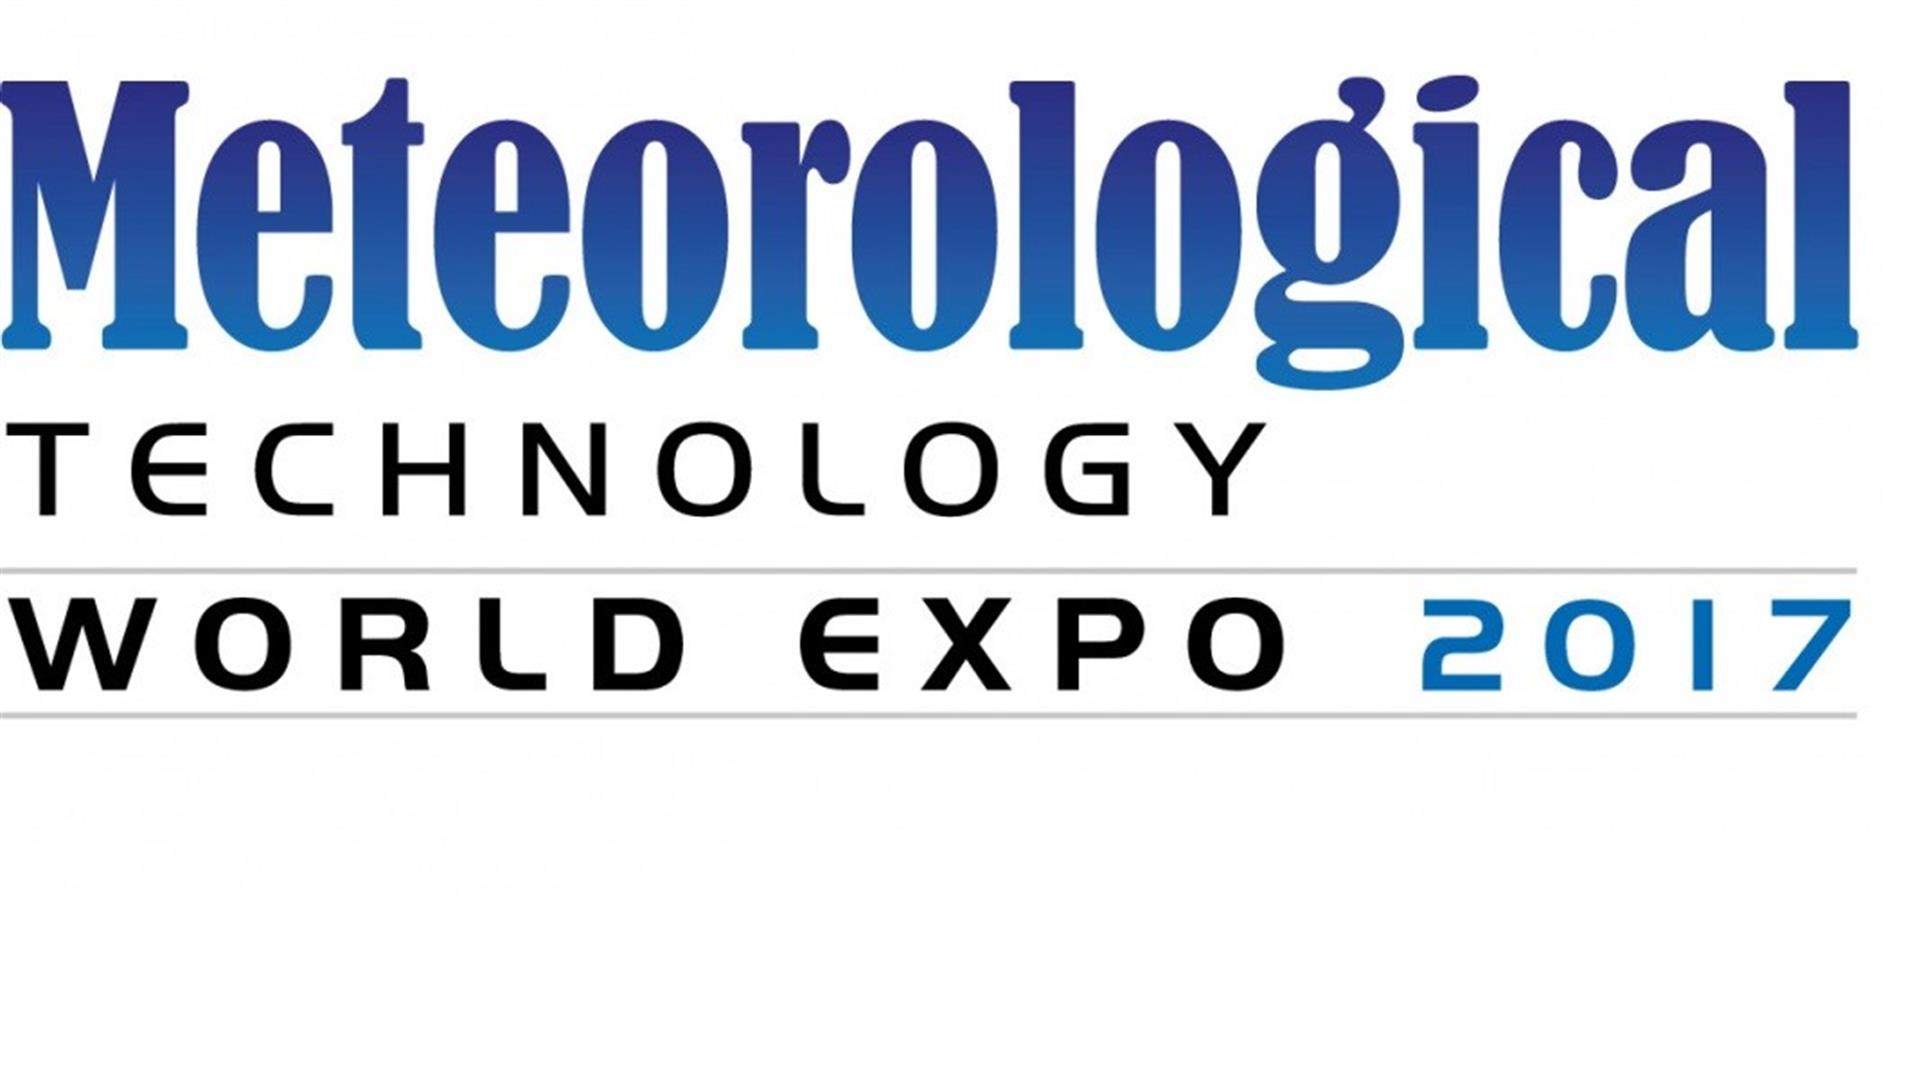 Meteorological Technology World EXPO 2017